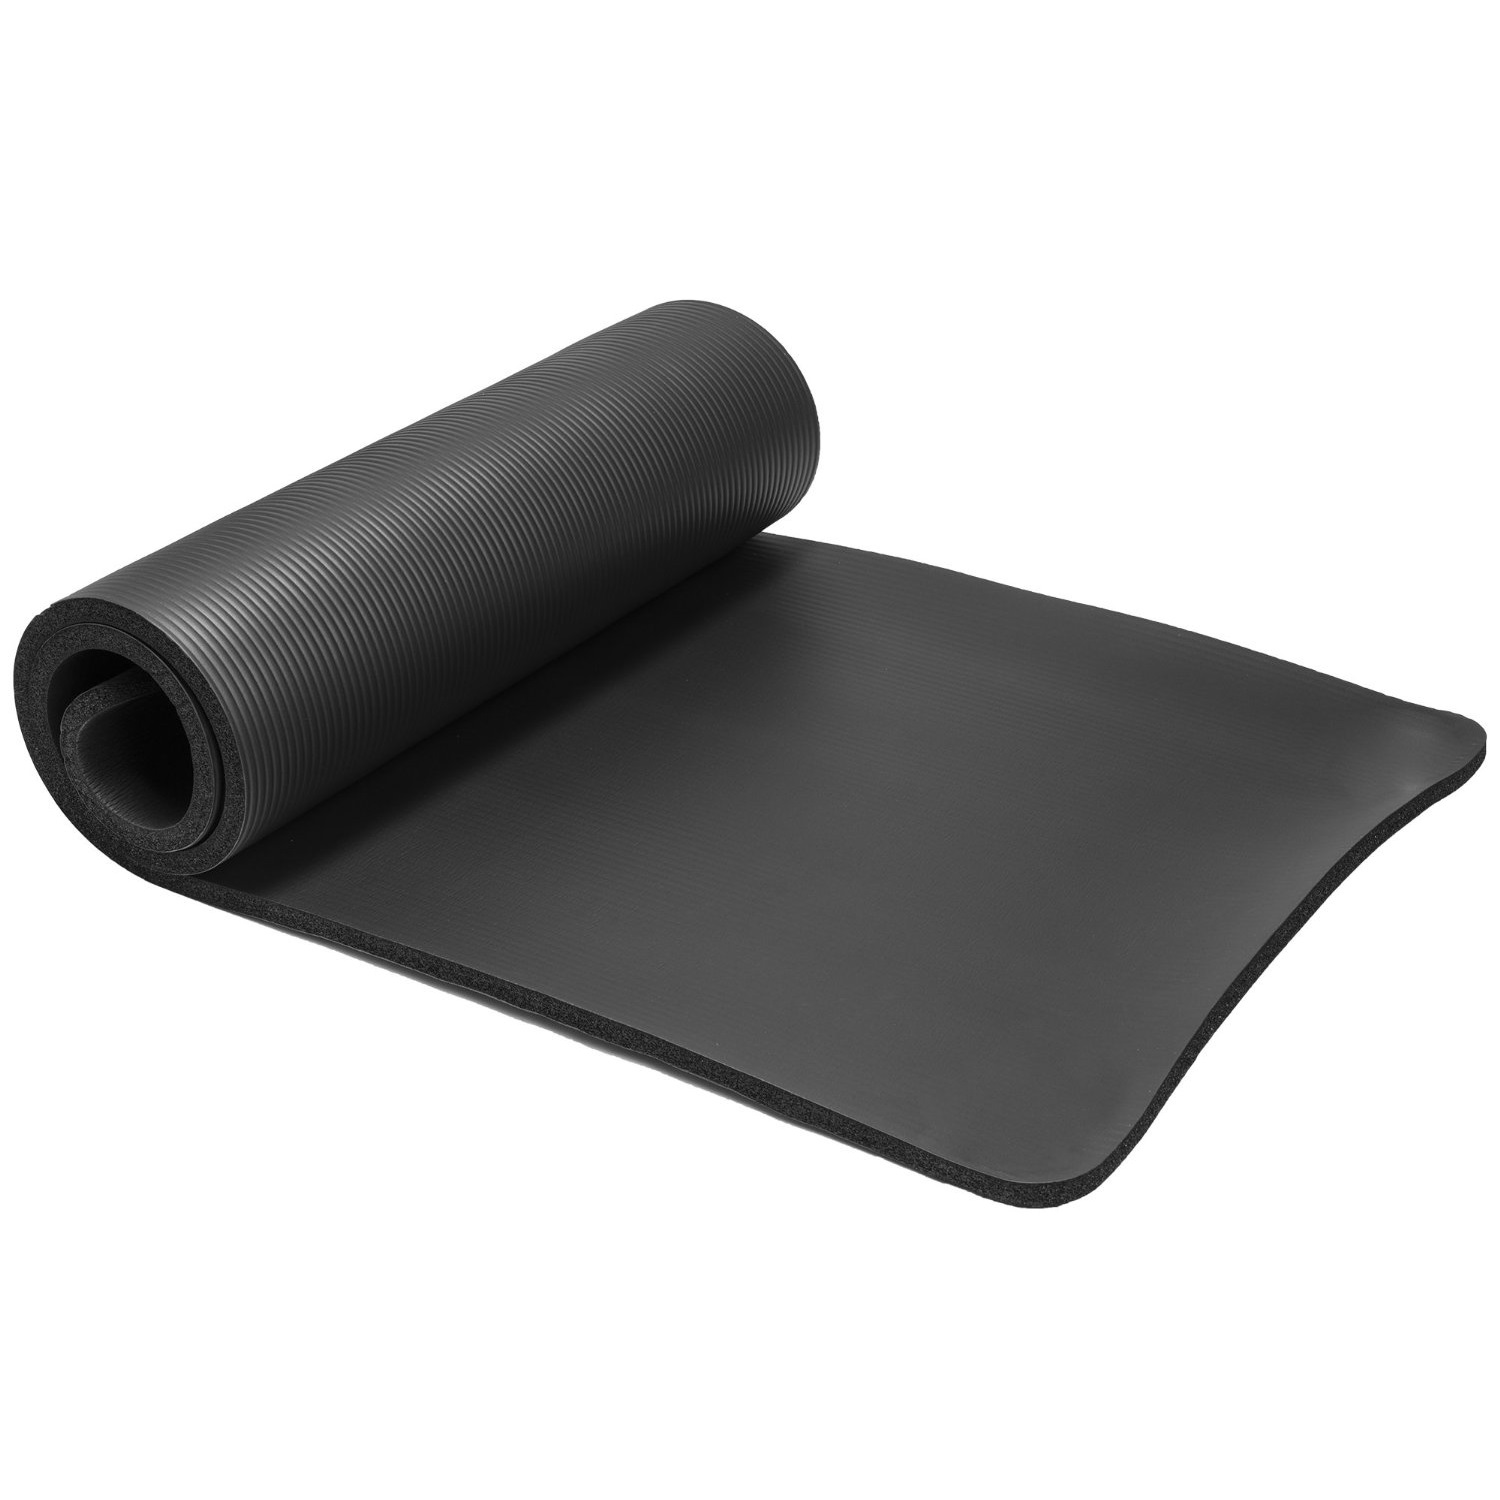 spoga premium 1/2 inch high density yoga mat with carrying strap